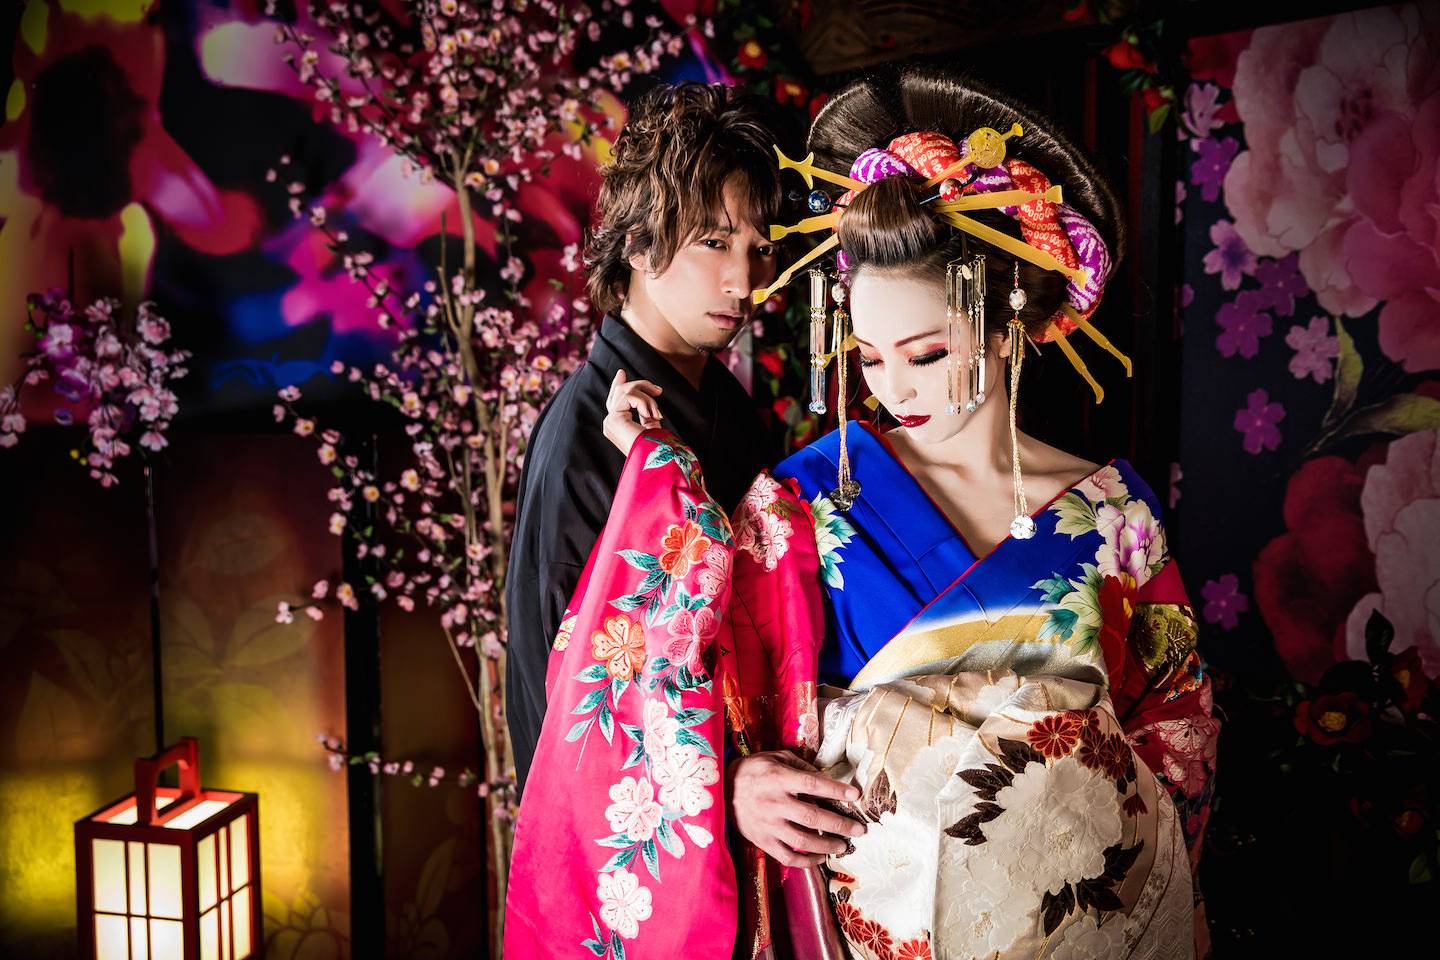 This is a picture of Samurai and Oiran dressed up in Kimono for make-over photo shoot in Kyoto Japan.